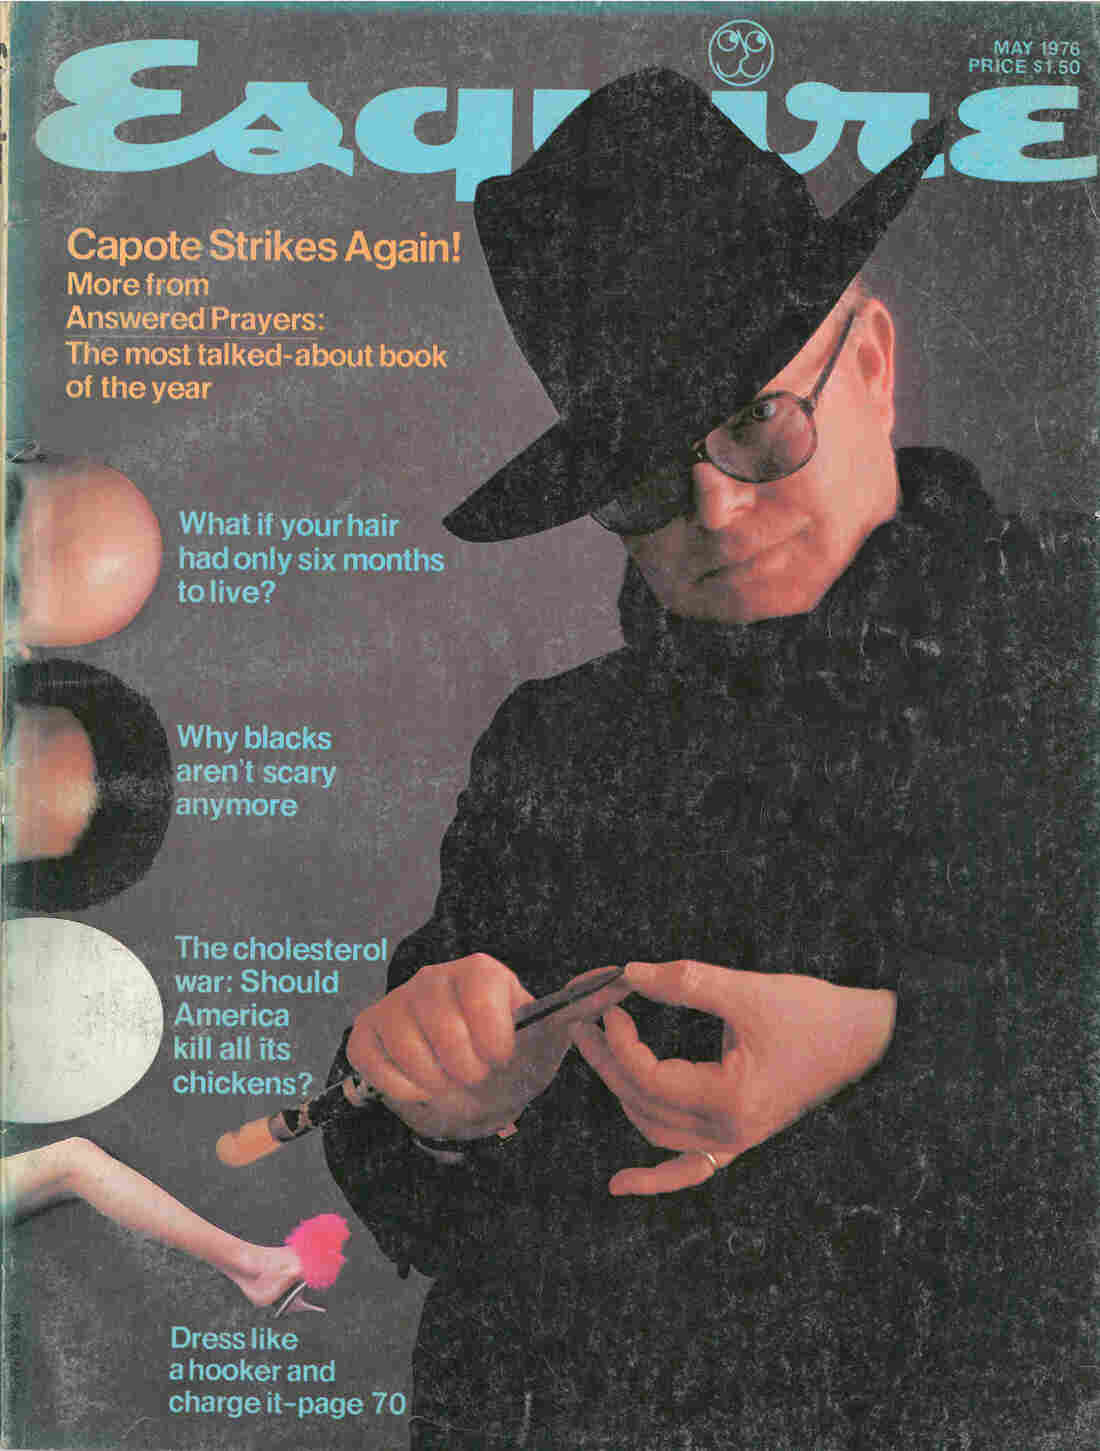 "From 1969 to 1977, during Gordon Lish's tenure as fiction editor, the magazine was known for publishing some of the era's literary icons,€"" including John Cheever, Raymond Carver and Truman Capote, who let Esquire run the first chapters of his unfinished book Answered Prayers in 1975 and '76."